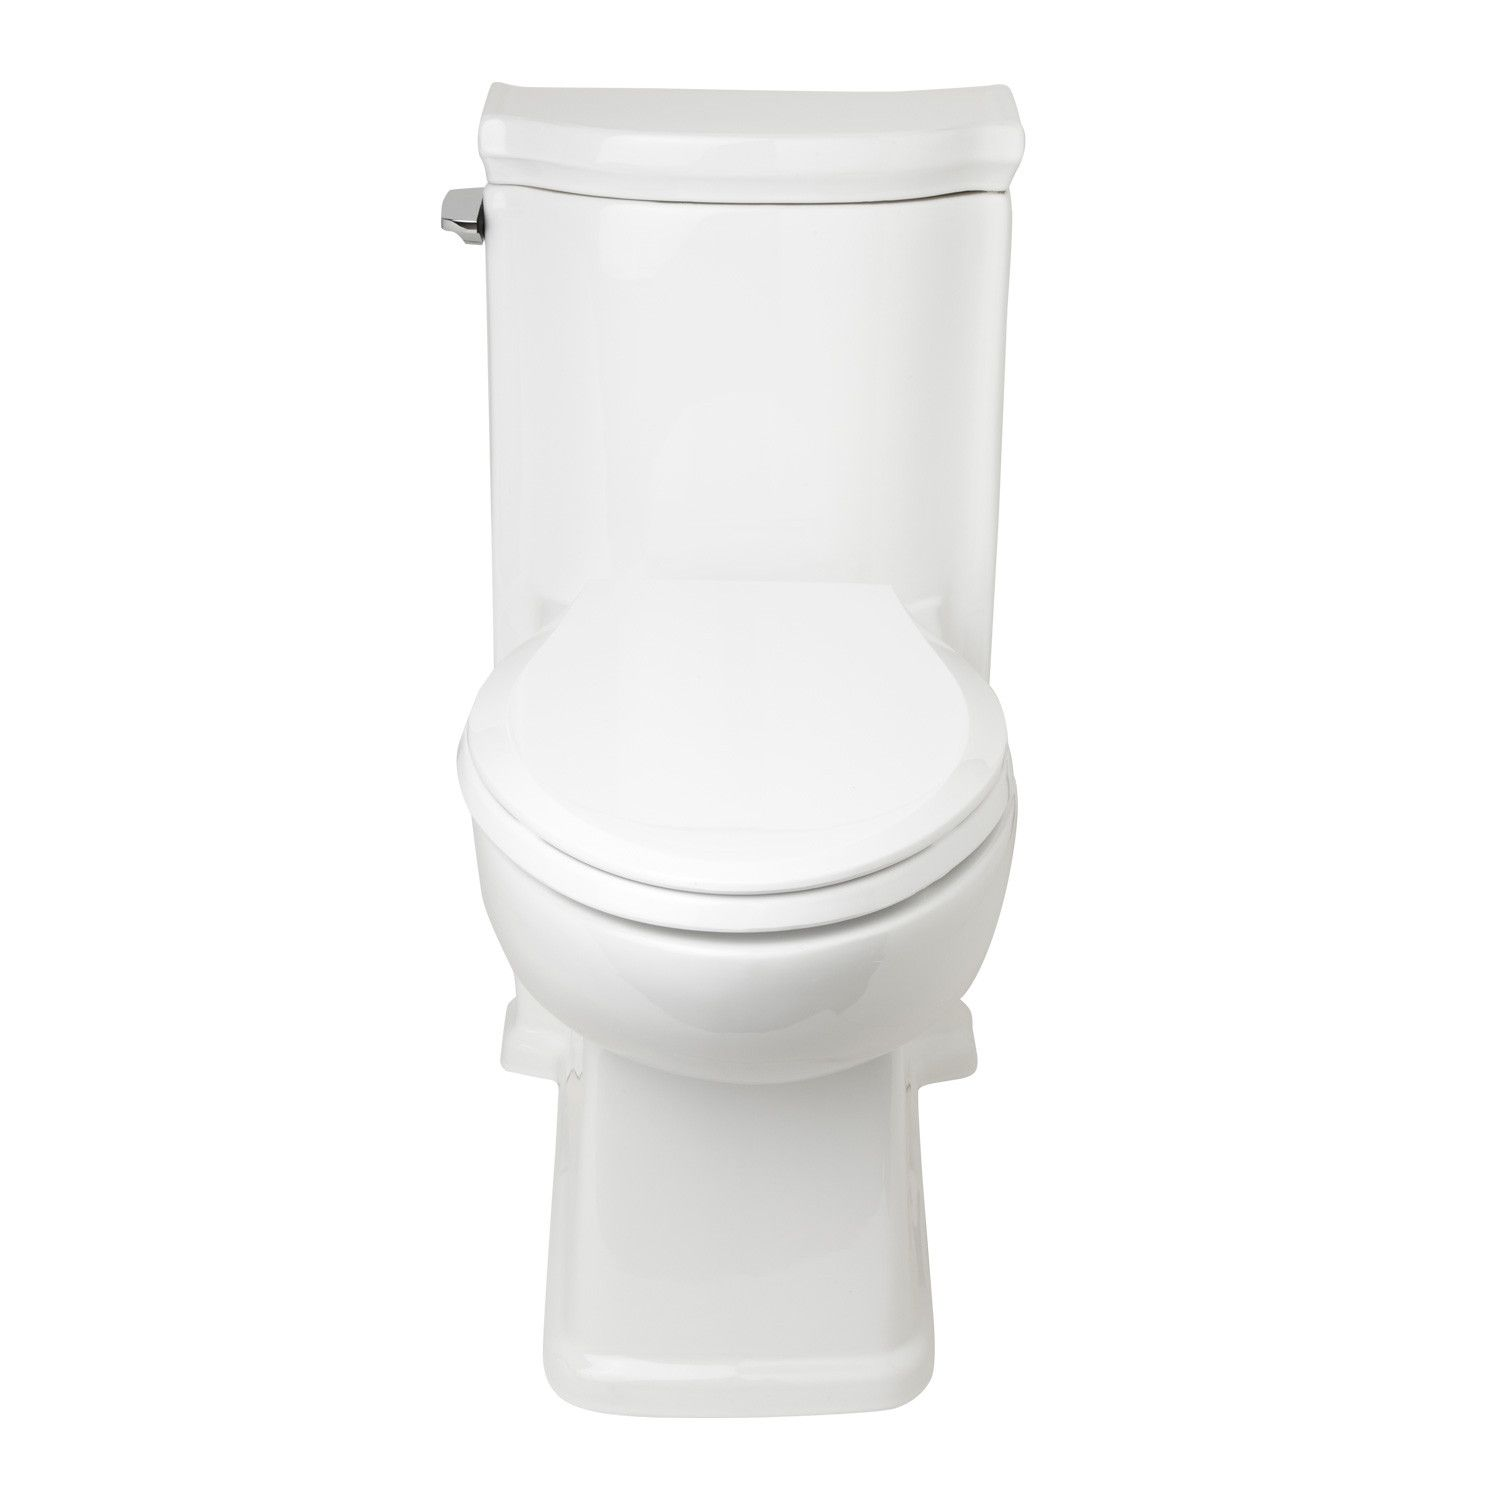 Halcott OnePiece Siphonic Toilet  Elongated  White